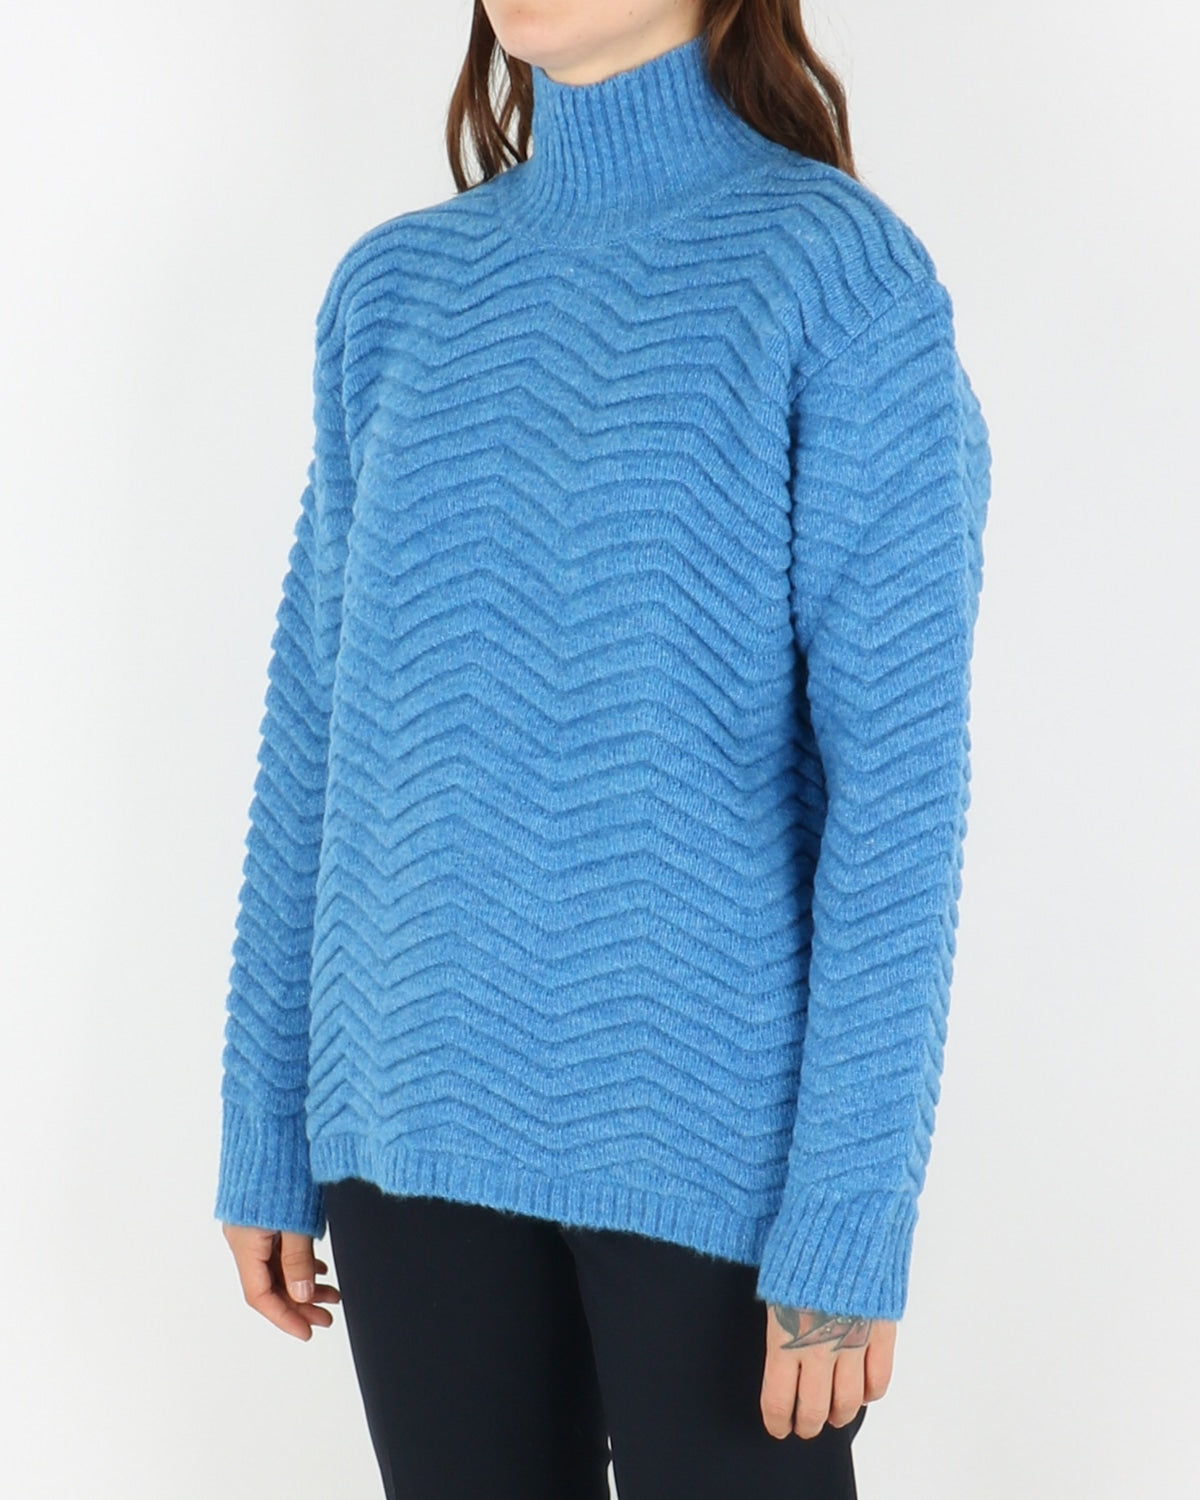 basic apparel_nille knit_azure blue_view_2_3